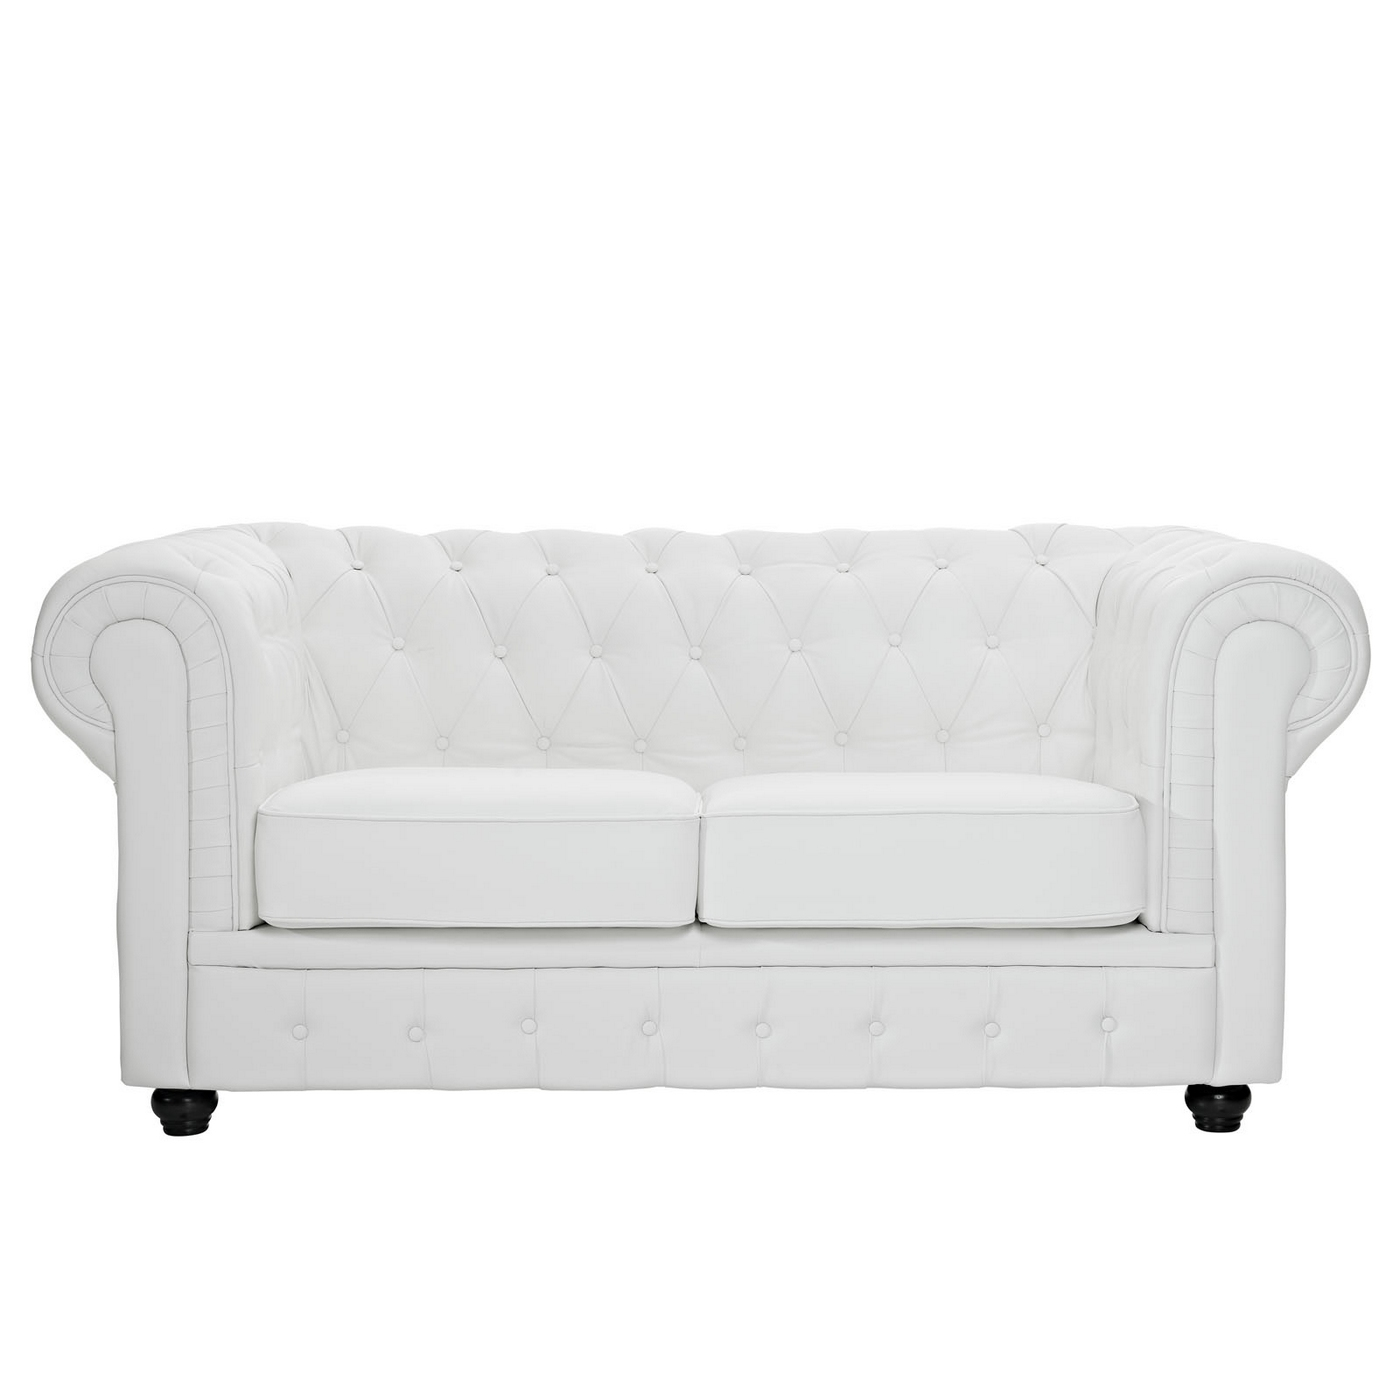 tufted leather sofa with rolled arms bamboo arm tray chesterfield modern button loveseat w